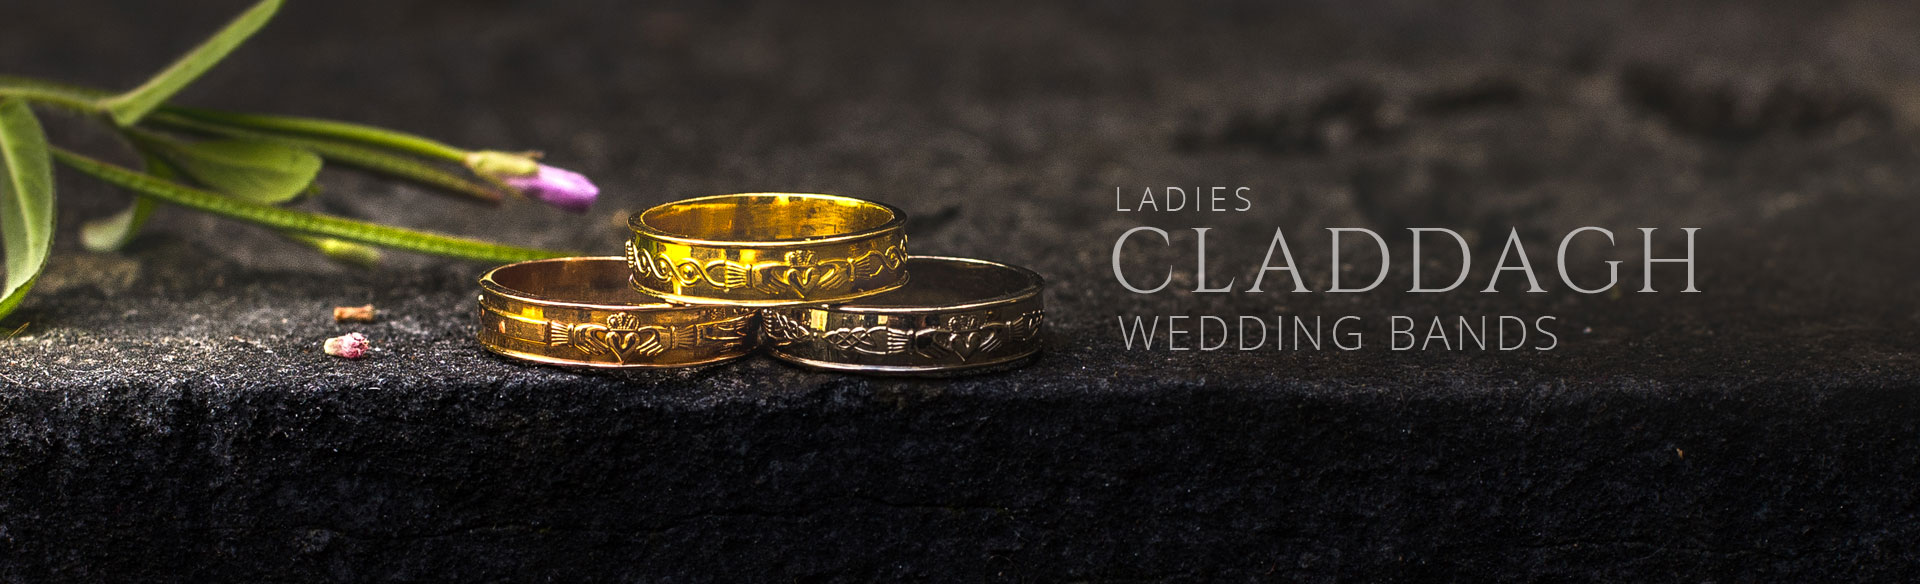 Ladies Claddagh